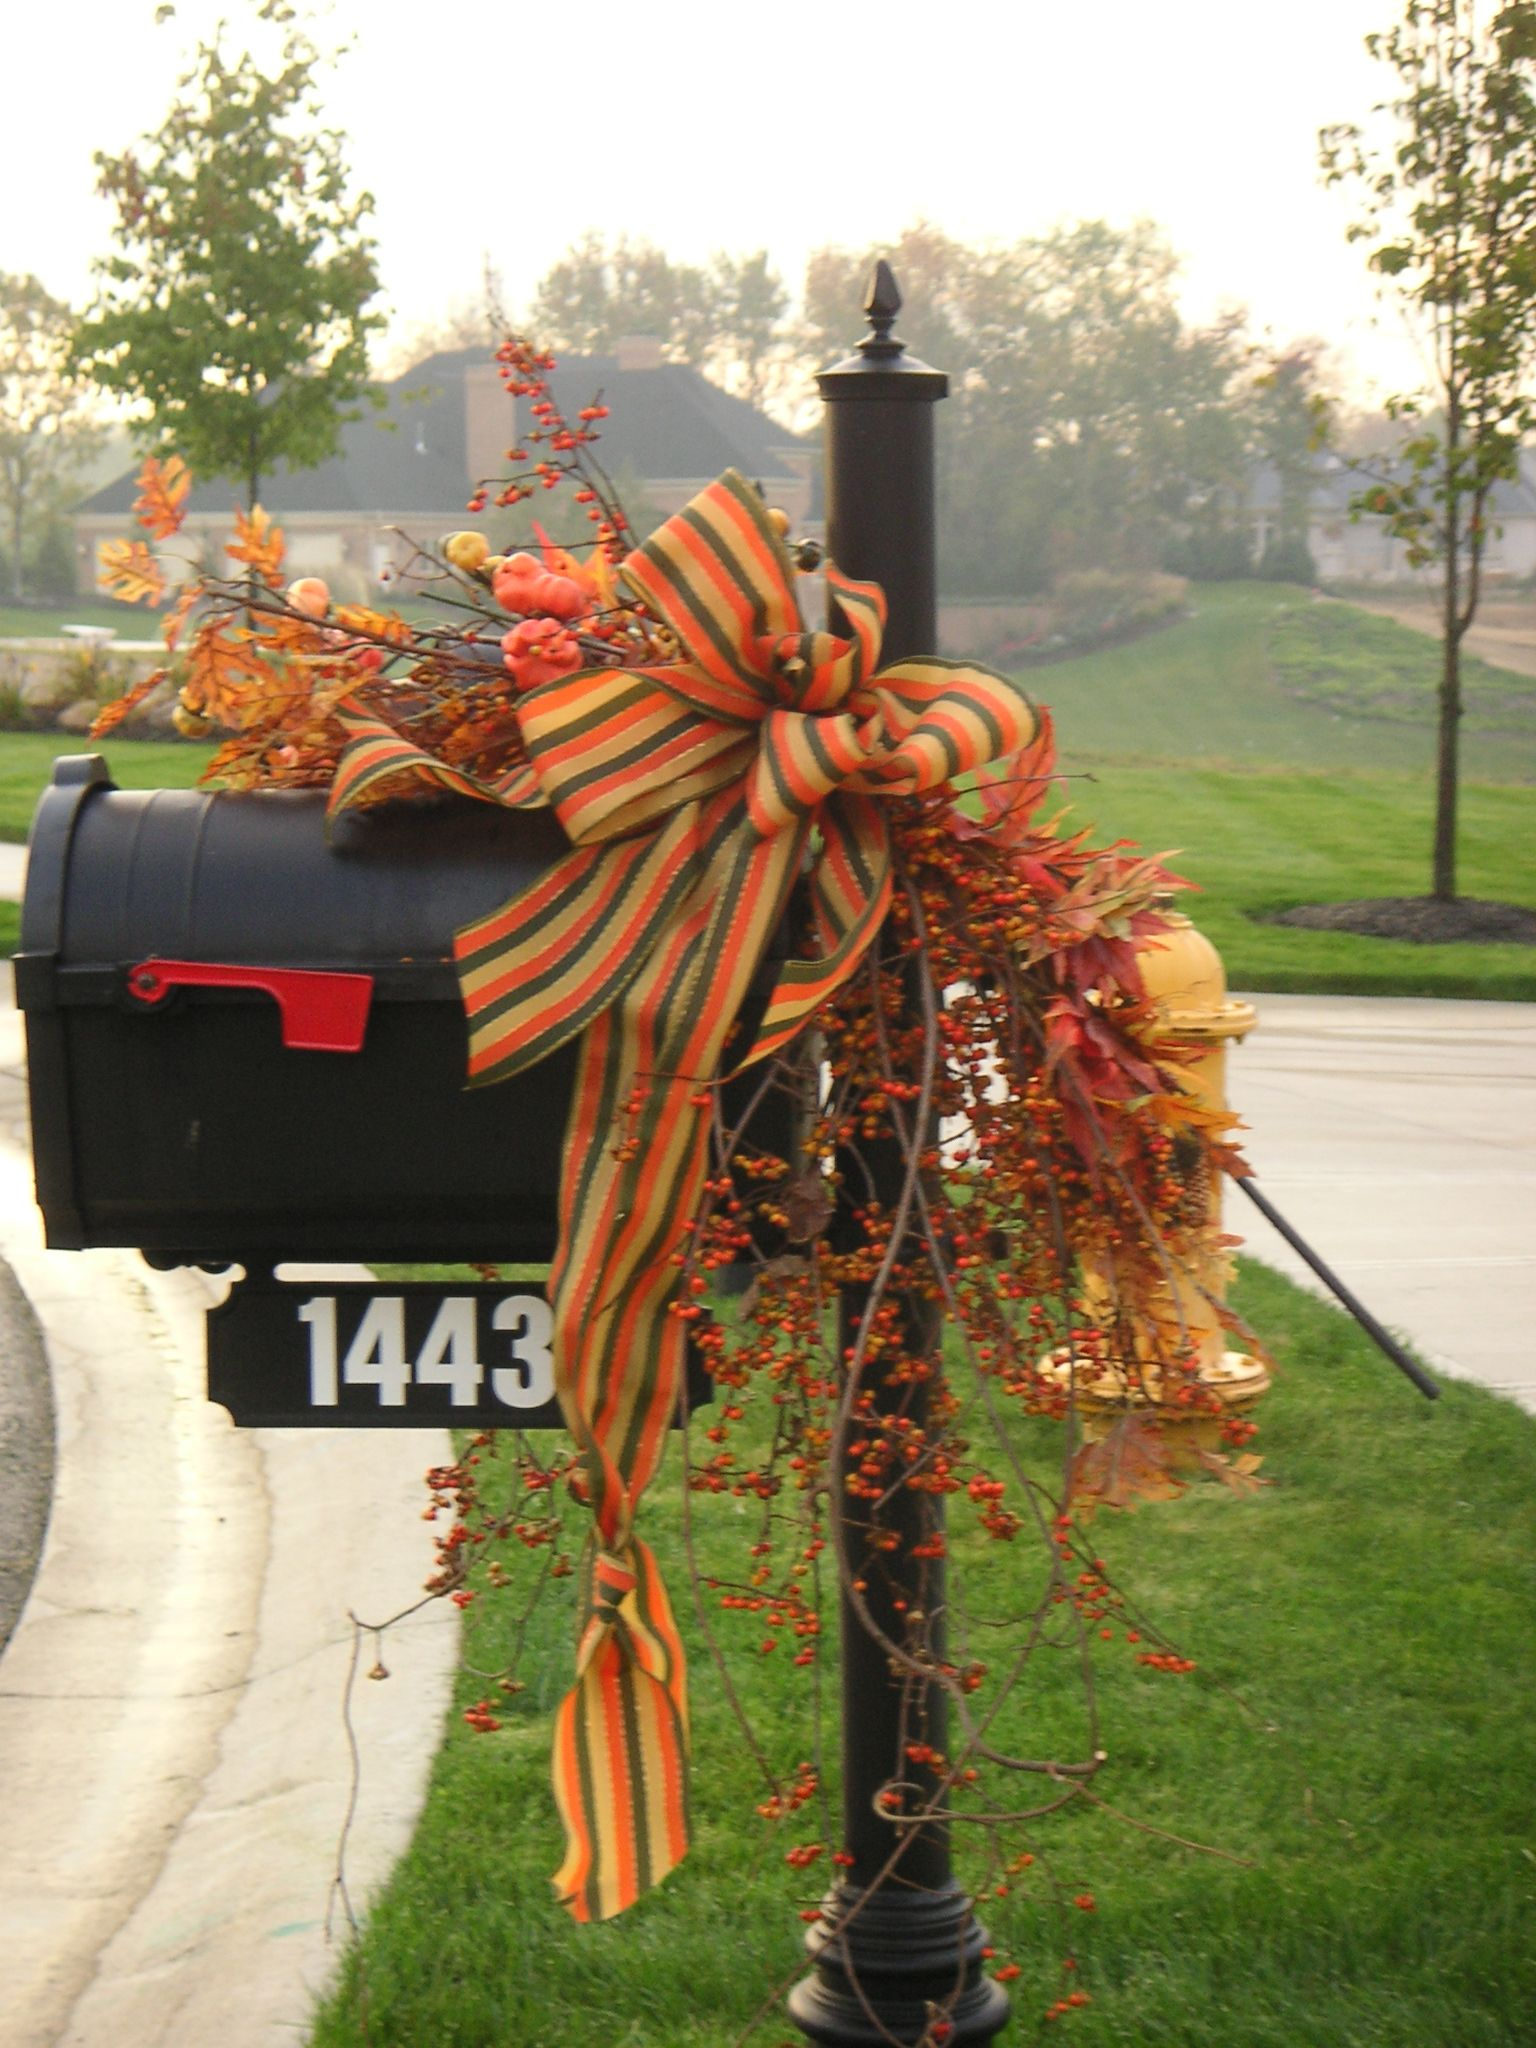 Pin by Melissa Keeney on Crafts  Fall halloween decor, Fall